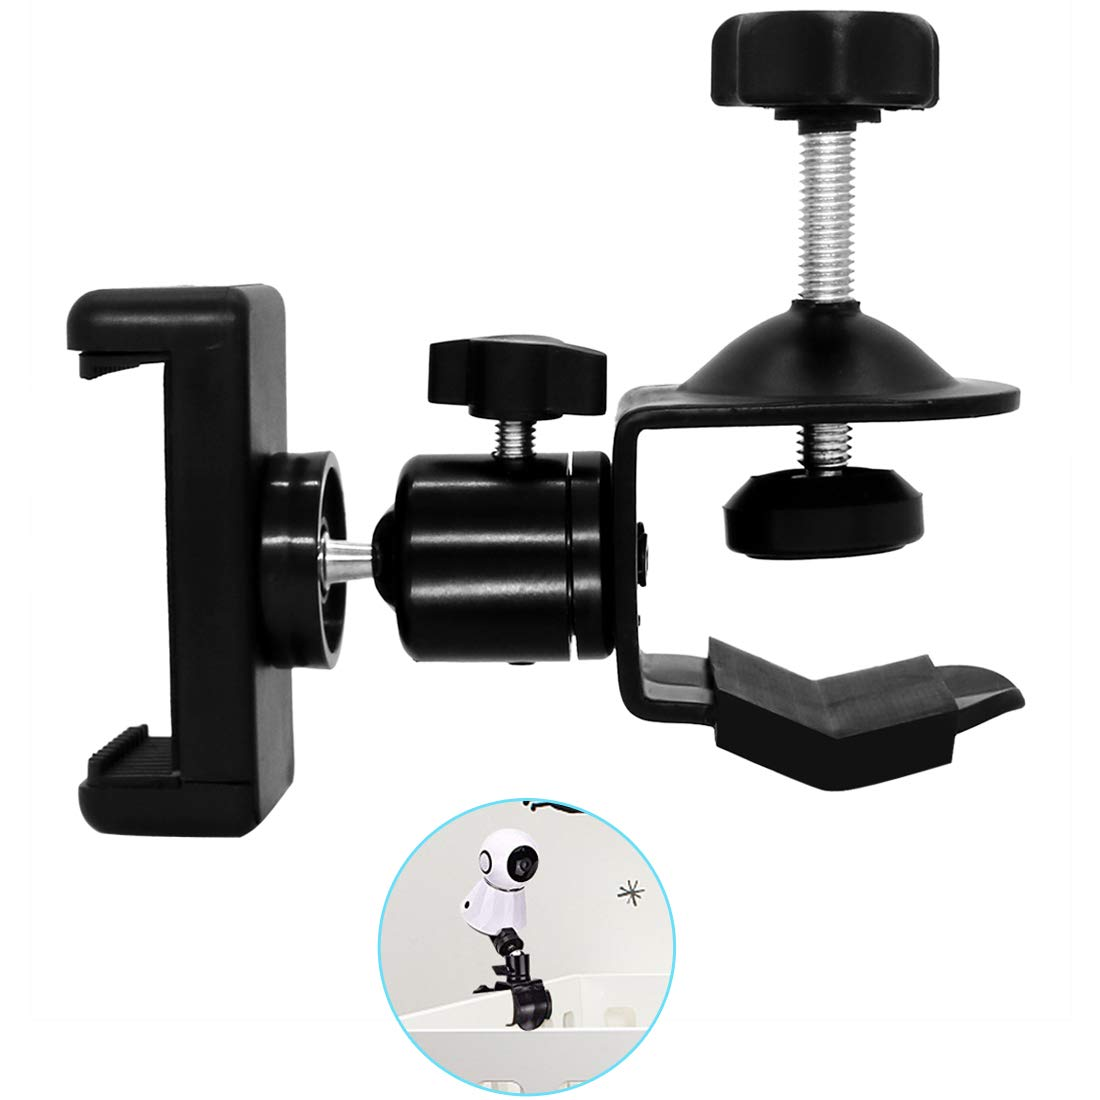 Baby Camera Monitor Mount Bracket 360 Degrees Adjustable Holder Flexible Camera Stand for Crib Nursery Compatible with Most Baby Monitors